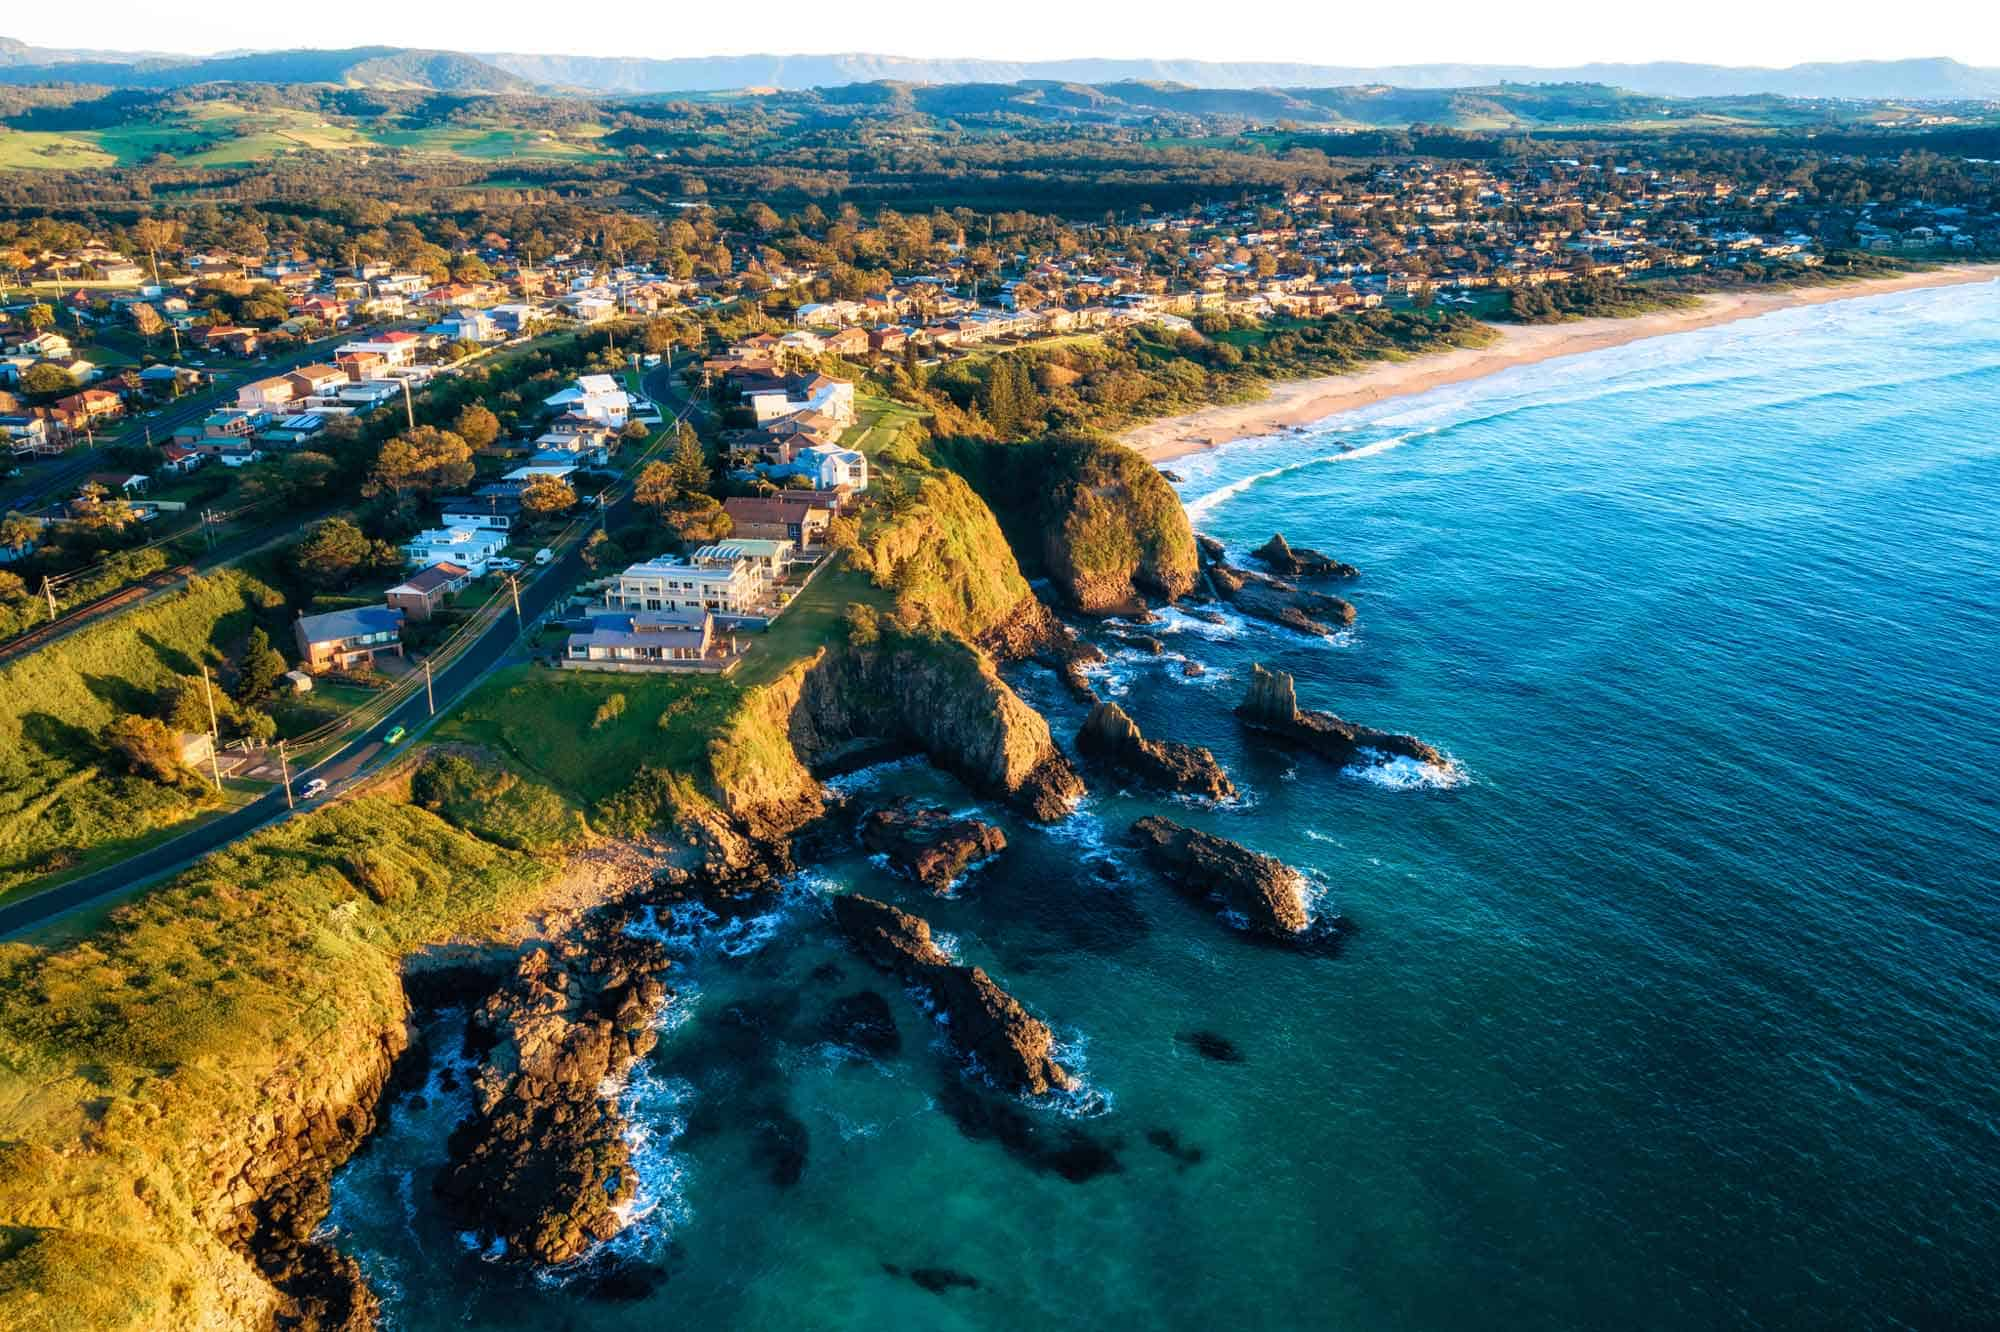 Things To Do In Kiama